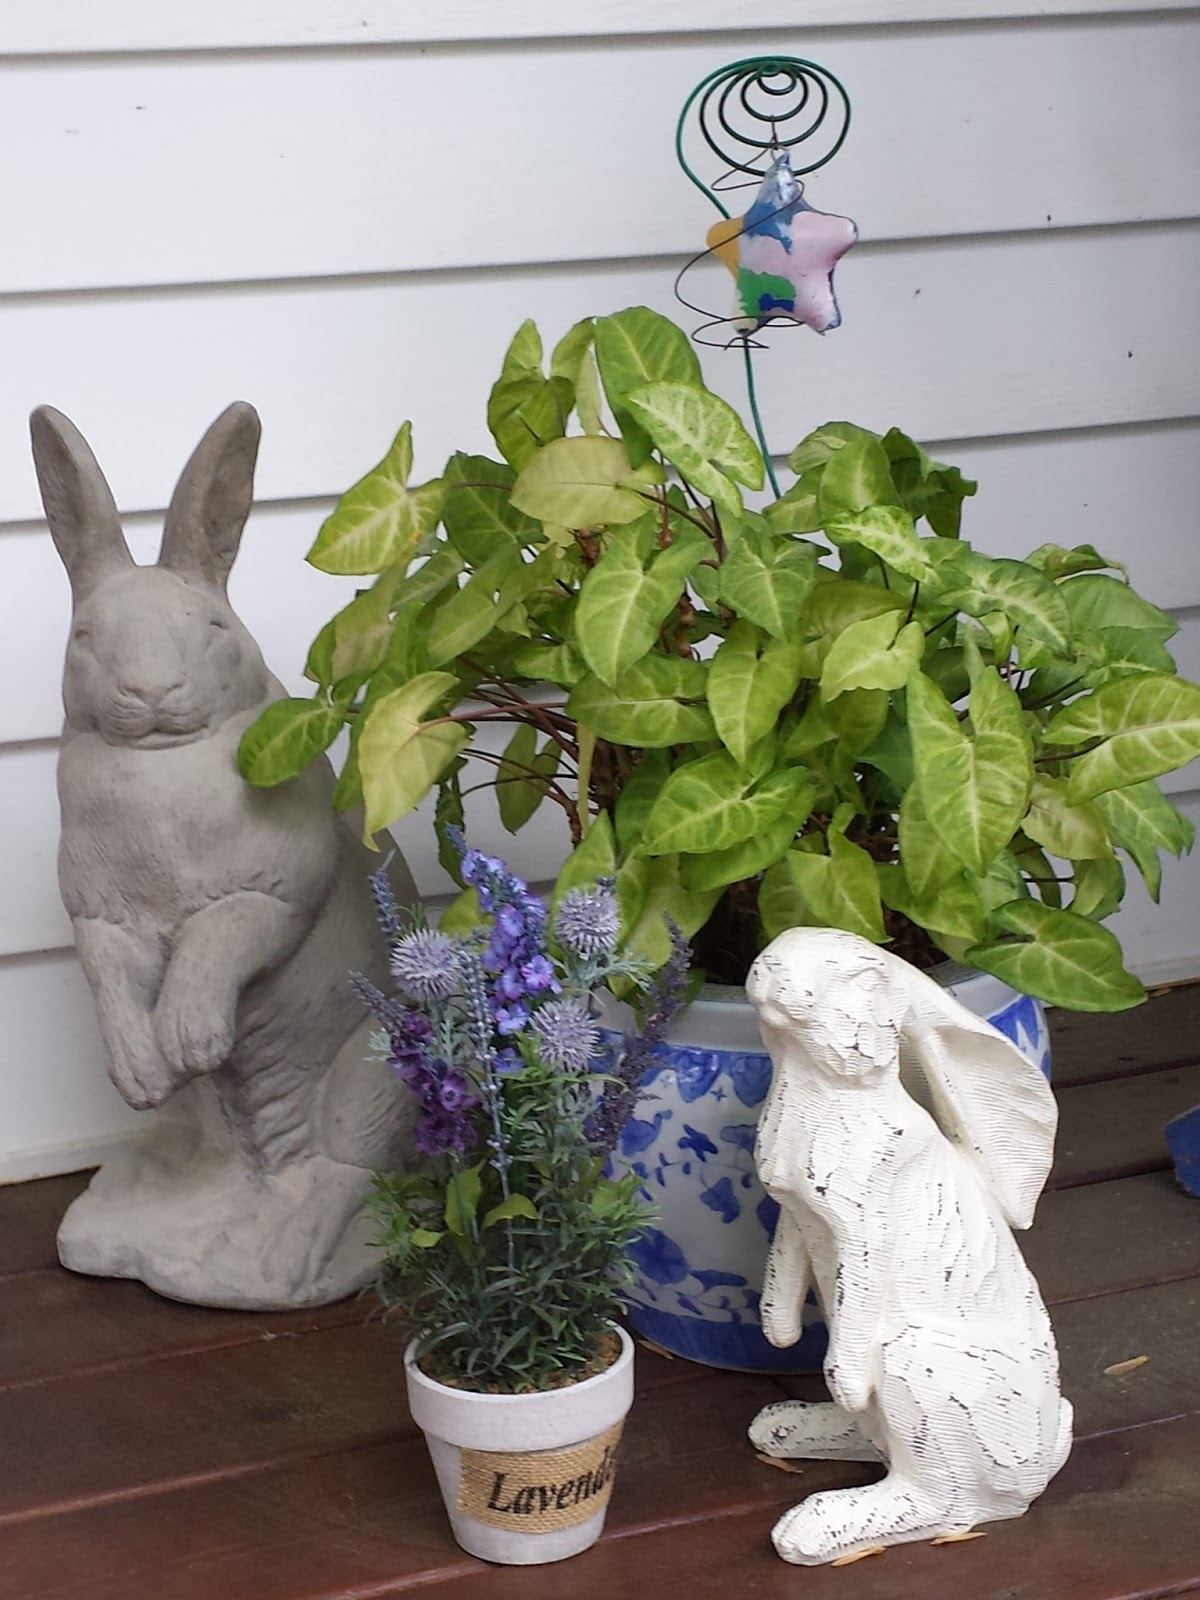 Rabbits and a plant